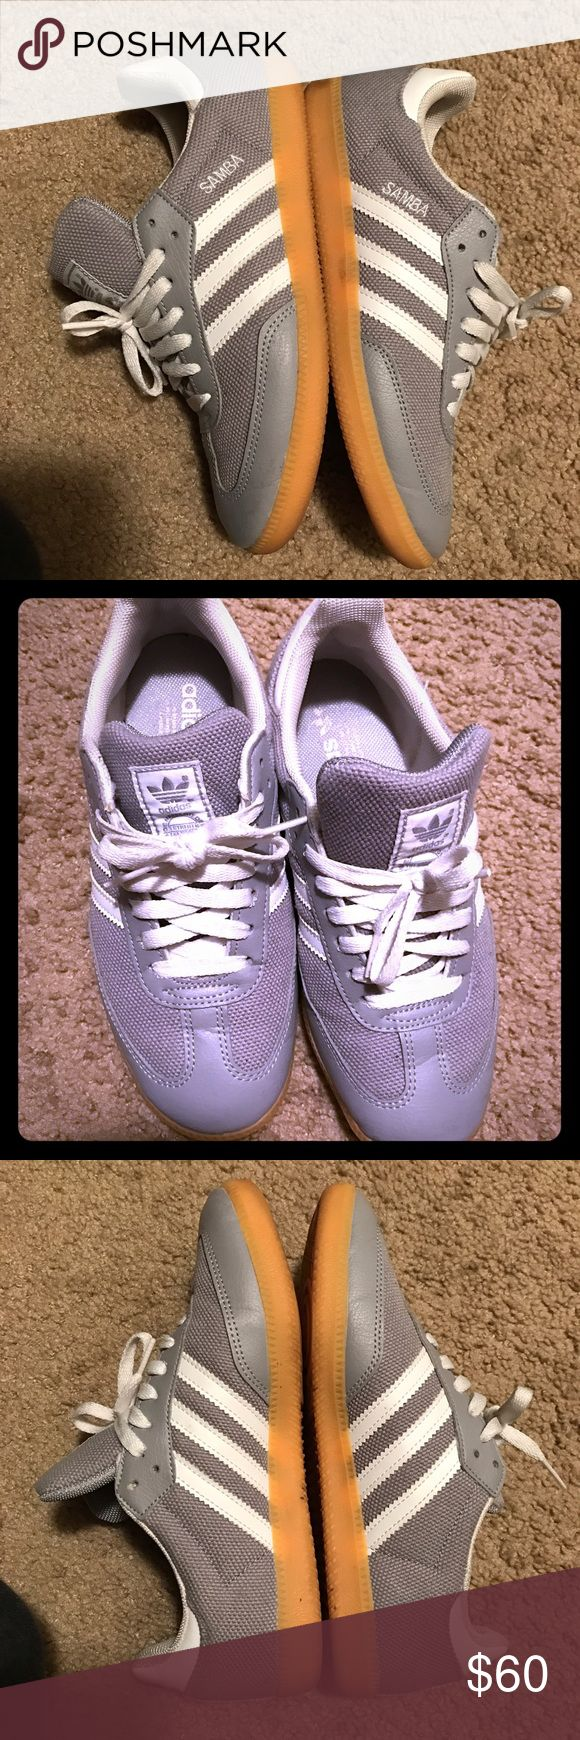 Adidas samba gray unisex classic style Very cute classic shoe. Worn but not damaged still in great condition. Fits me and I'm normally an 8 in women's these are size 7 in men according to the shoe. Adidas Shoes Sneakers